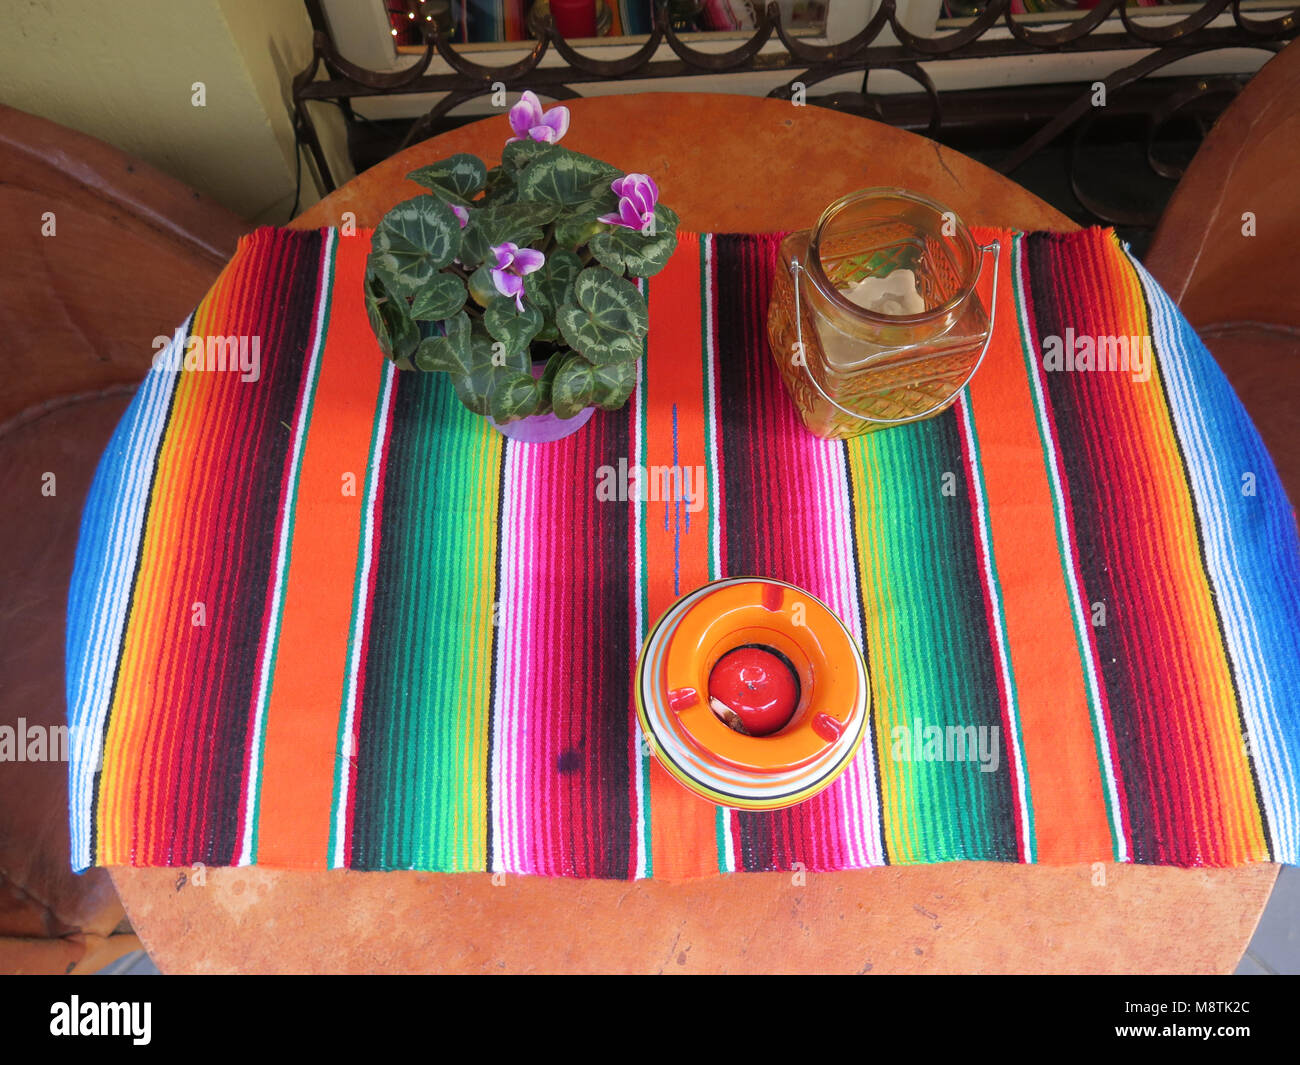 Colorful woven cloth table setting at pavement restaurant - Stock Image & Colorful Mexican Table Setting Restaurant Stock Photos \u0026 Colorful ...